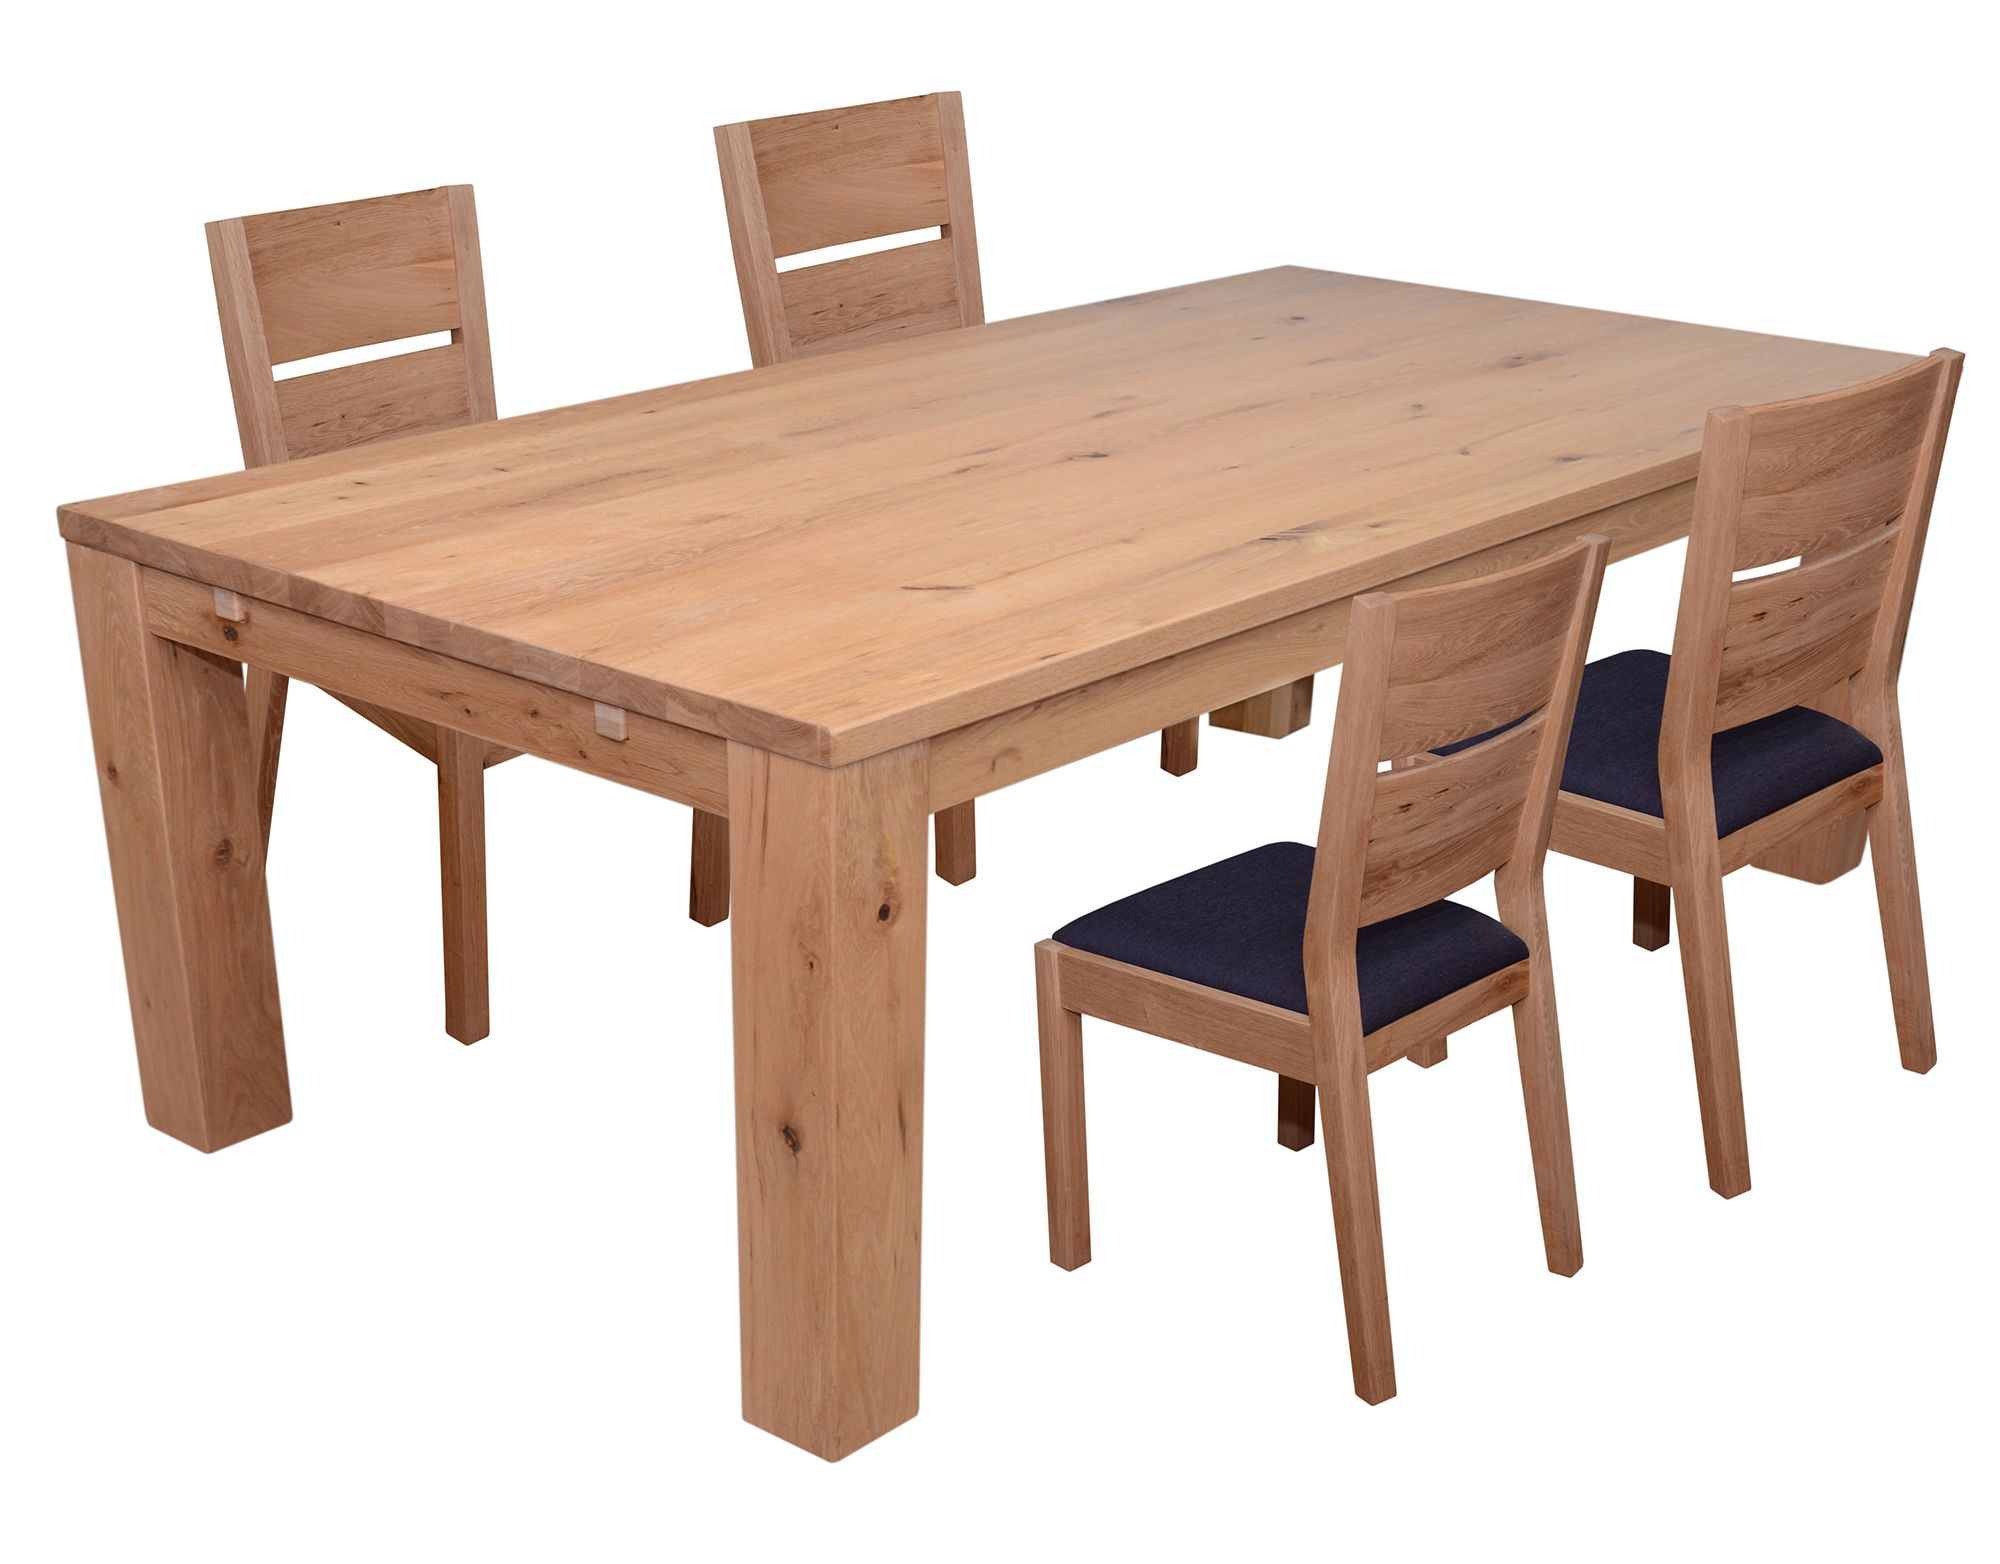 Castillo Wild Oak 6 8 Person Dining Table 4 Slatted Dining Chair C